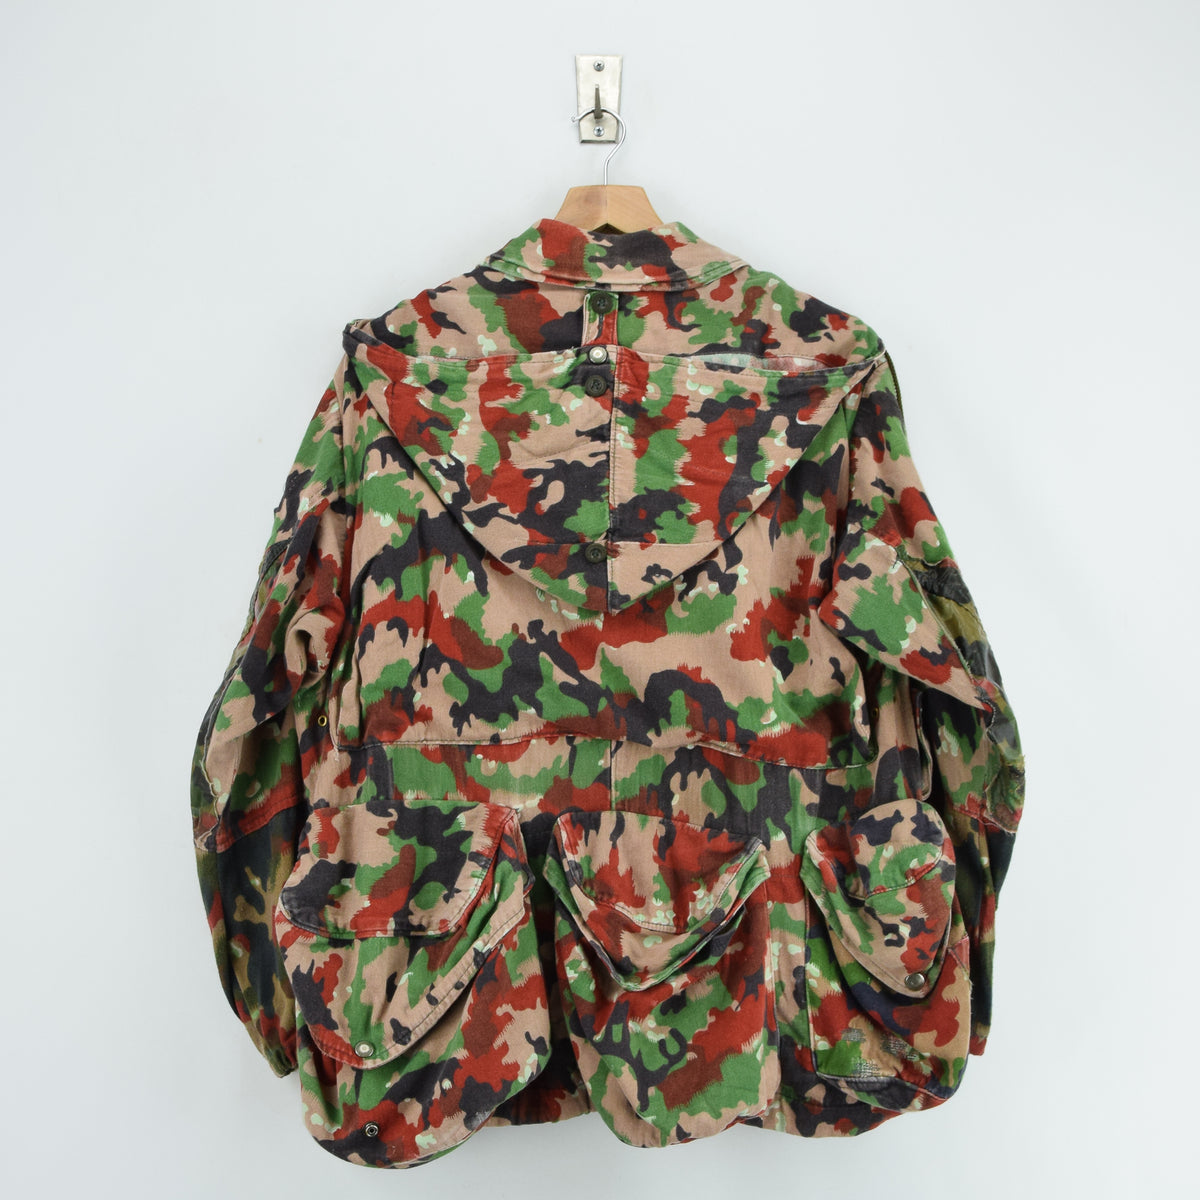 Vintage 70s Swiss Army Alpenflage Camo Swedish Sniper Combat Field Jacket S / M back